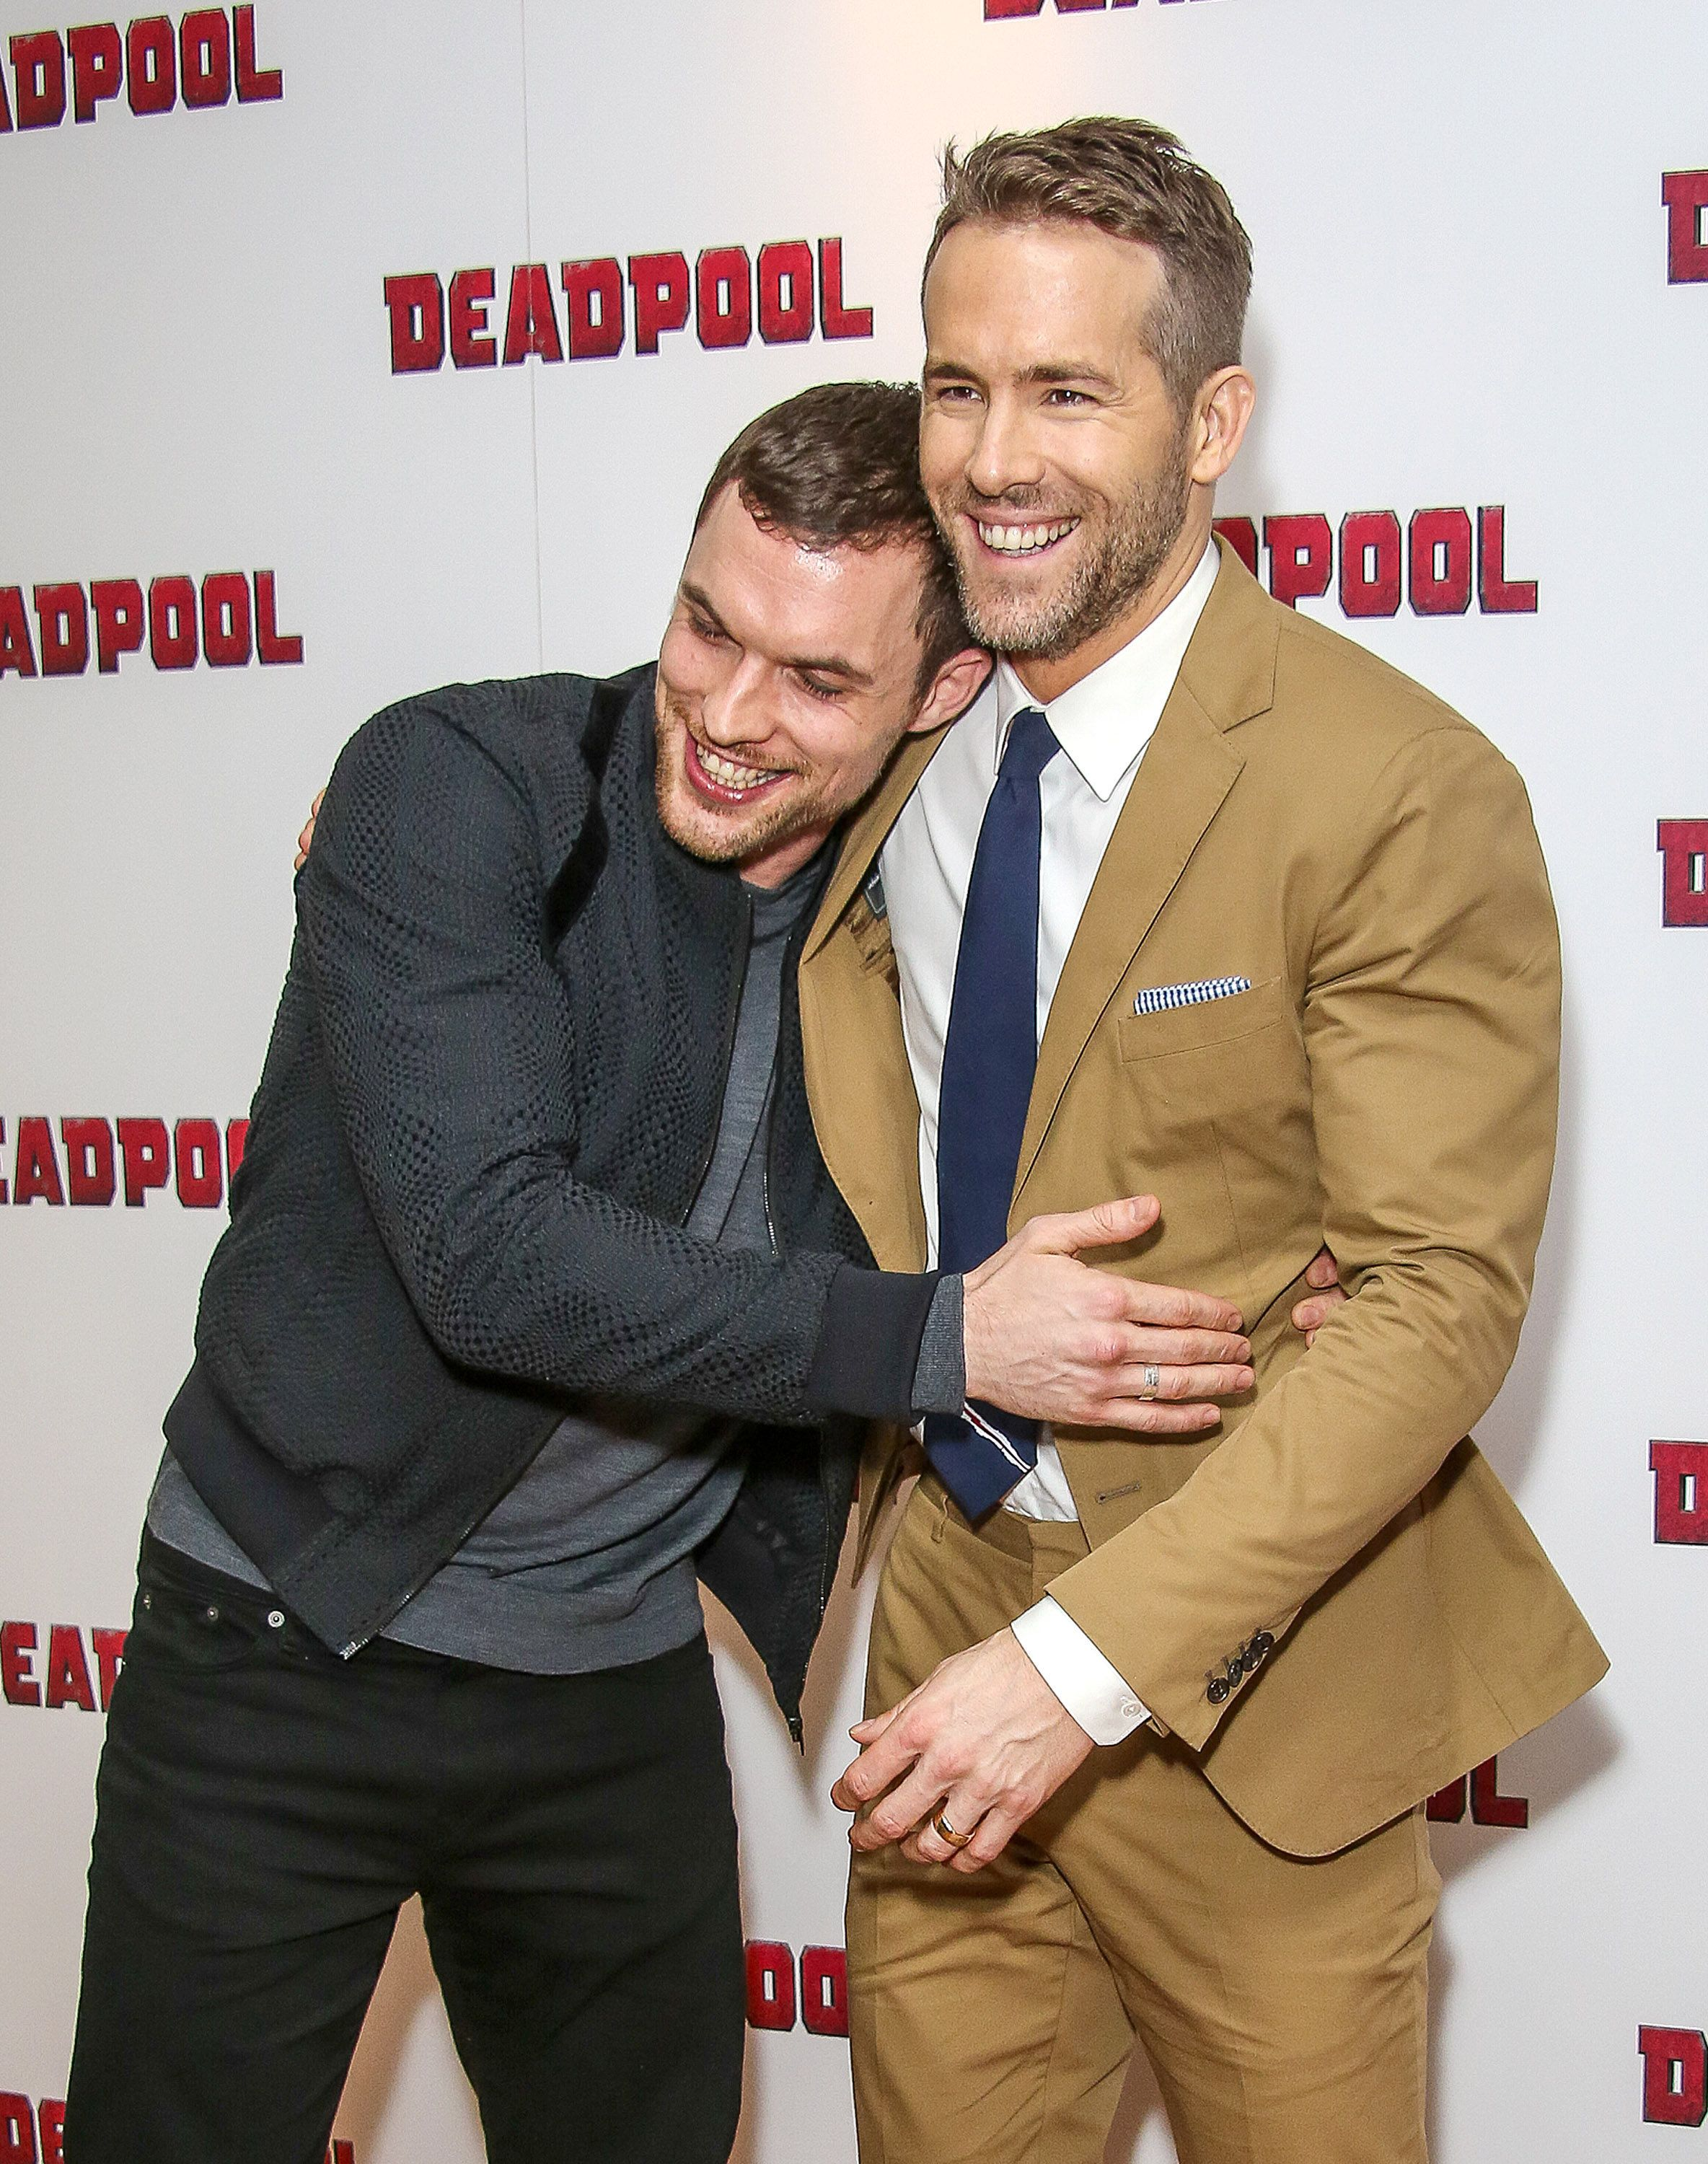 Ed Skrein and Ryan Reynolds attend a fan screening of 'Deadpool' at The Soho Hotel on January 28, 2016 in London, England. (P